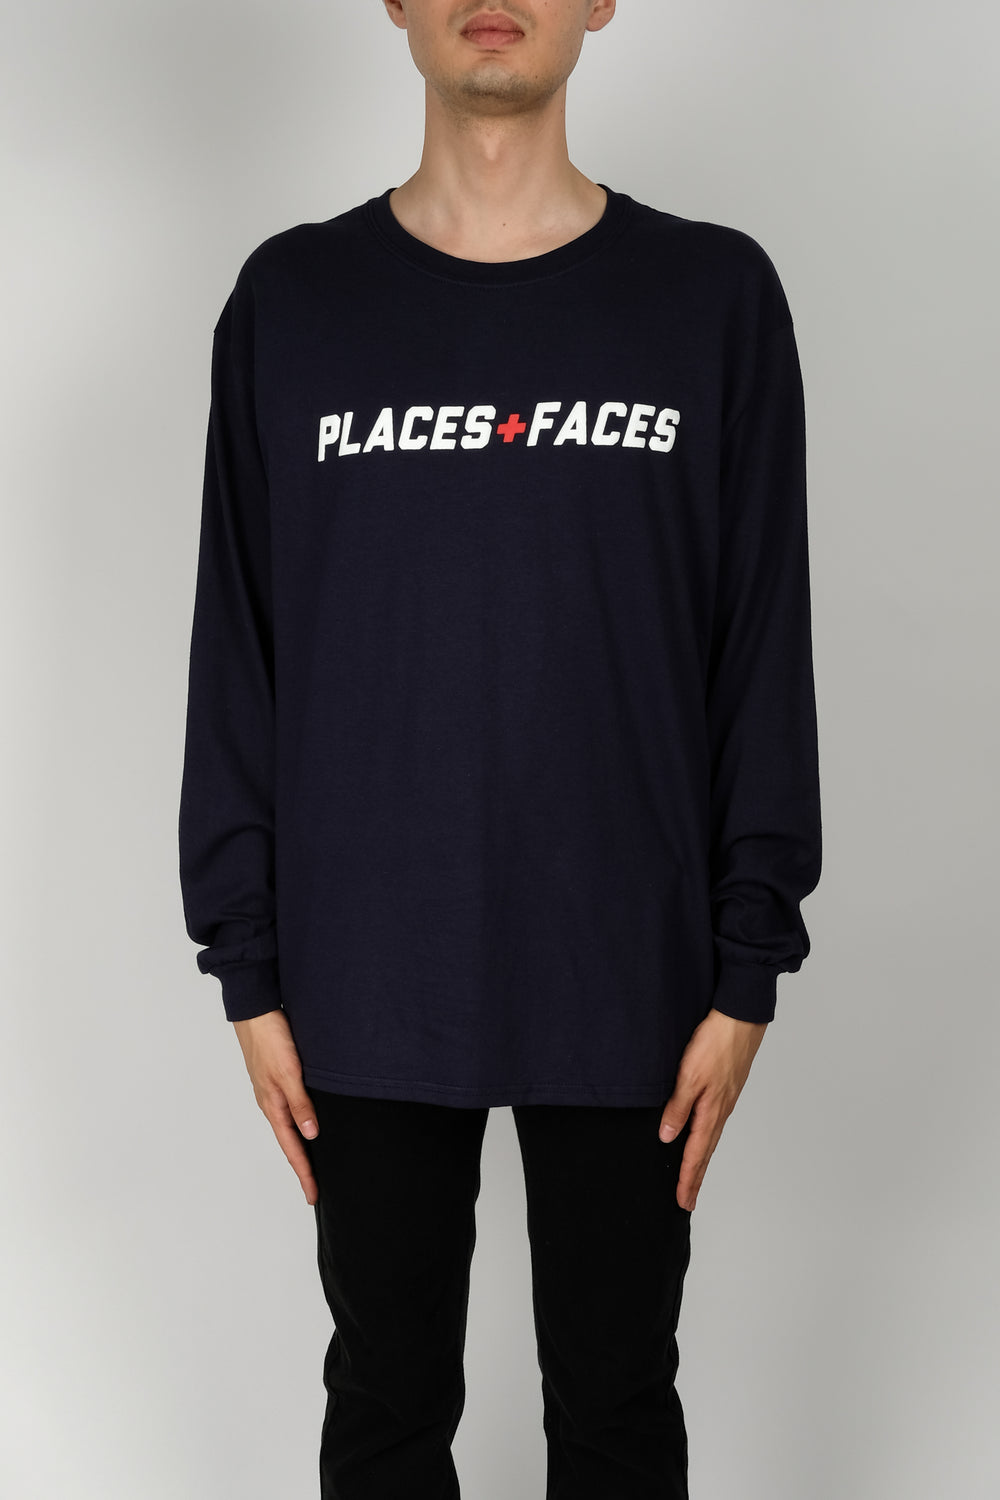 Places+Faces Canada L/S Tee In Navy